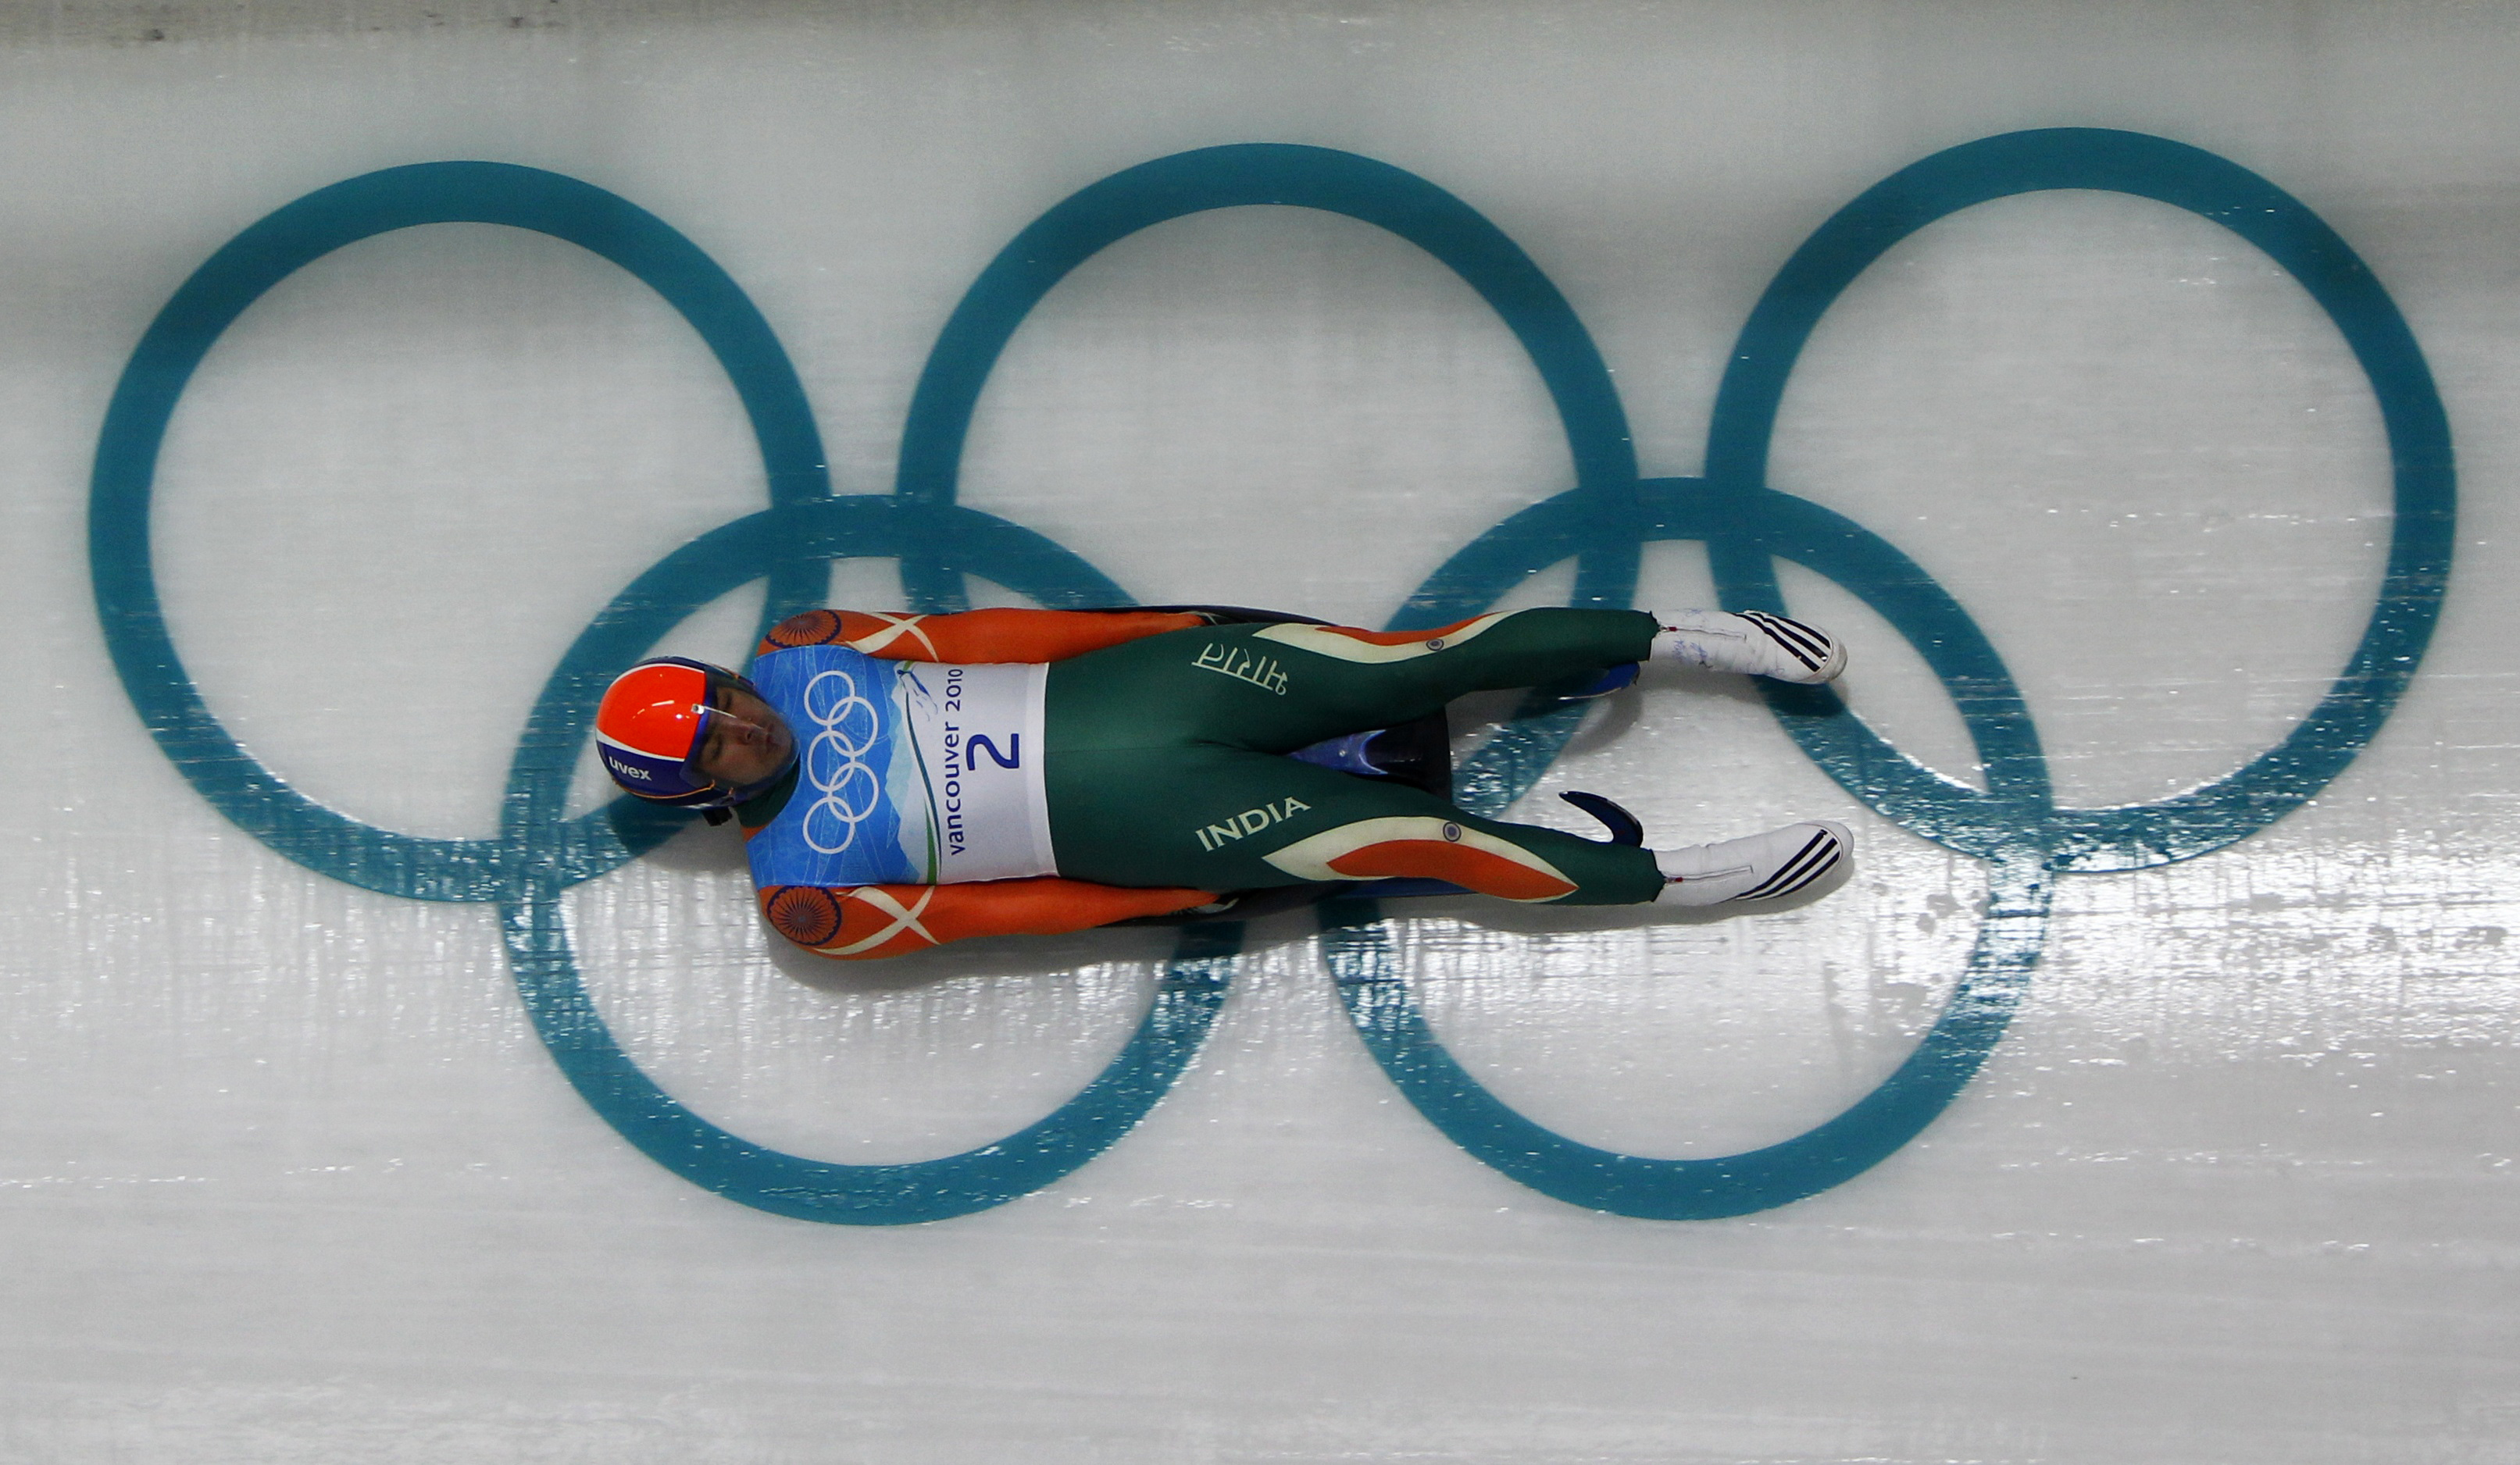 India's K.P. Keshavan speeds down the track during a training run for the men's singles luge in preparation for the Vancouver 2010 Winter Olympics in Whistler